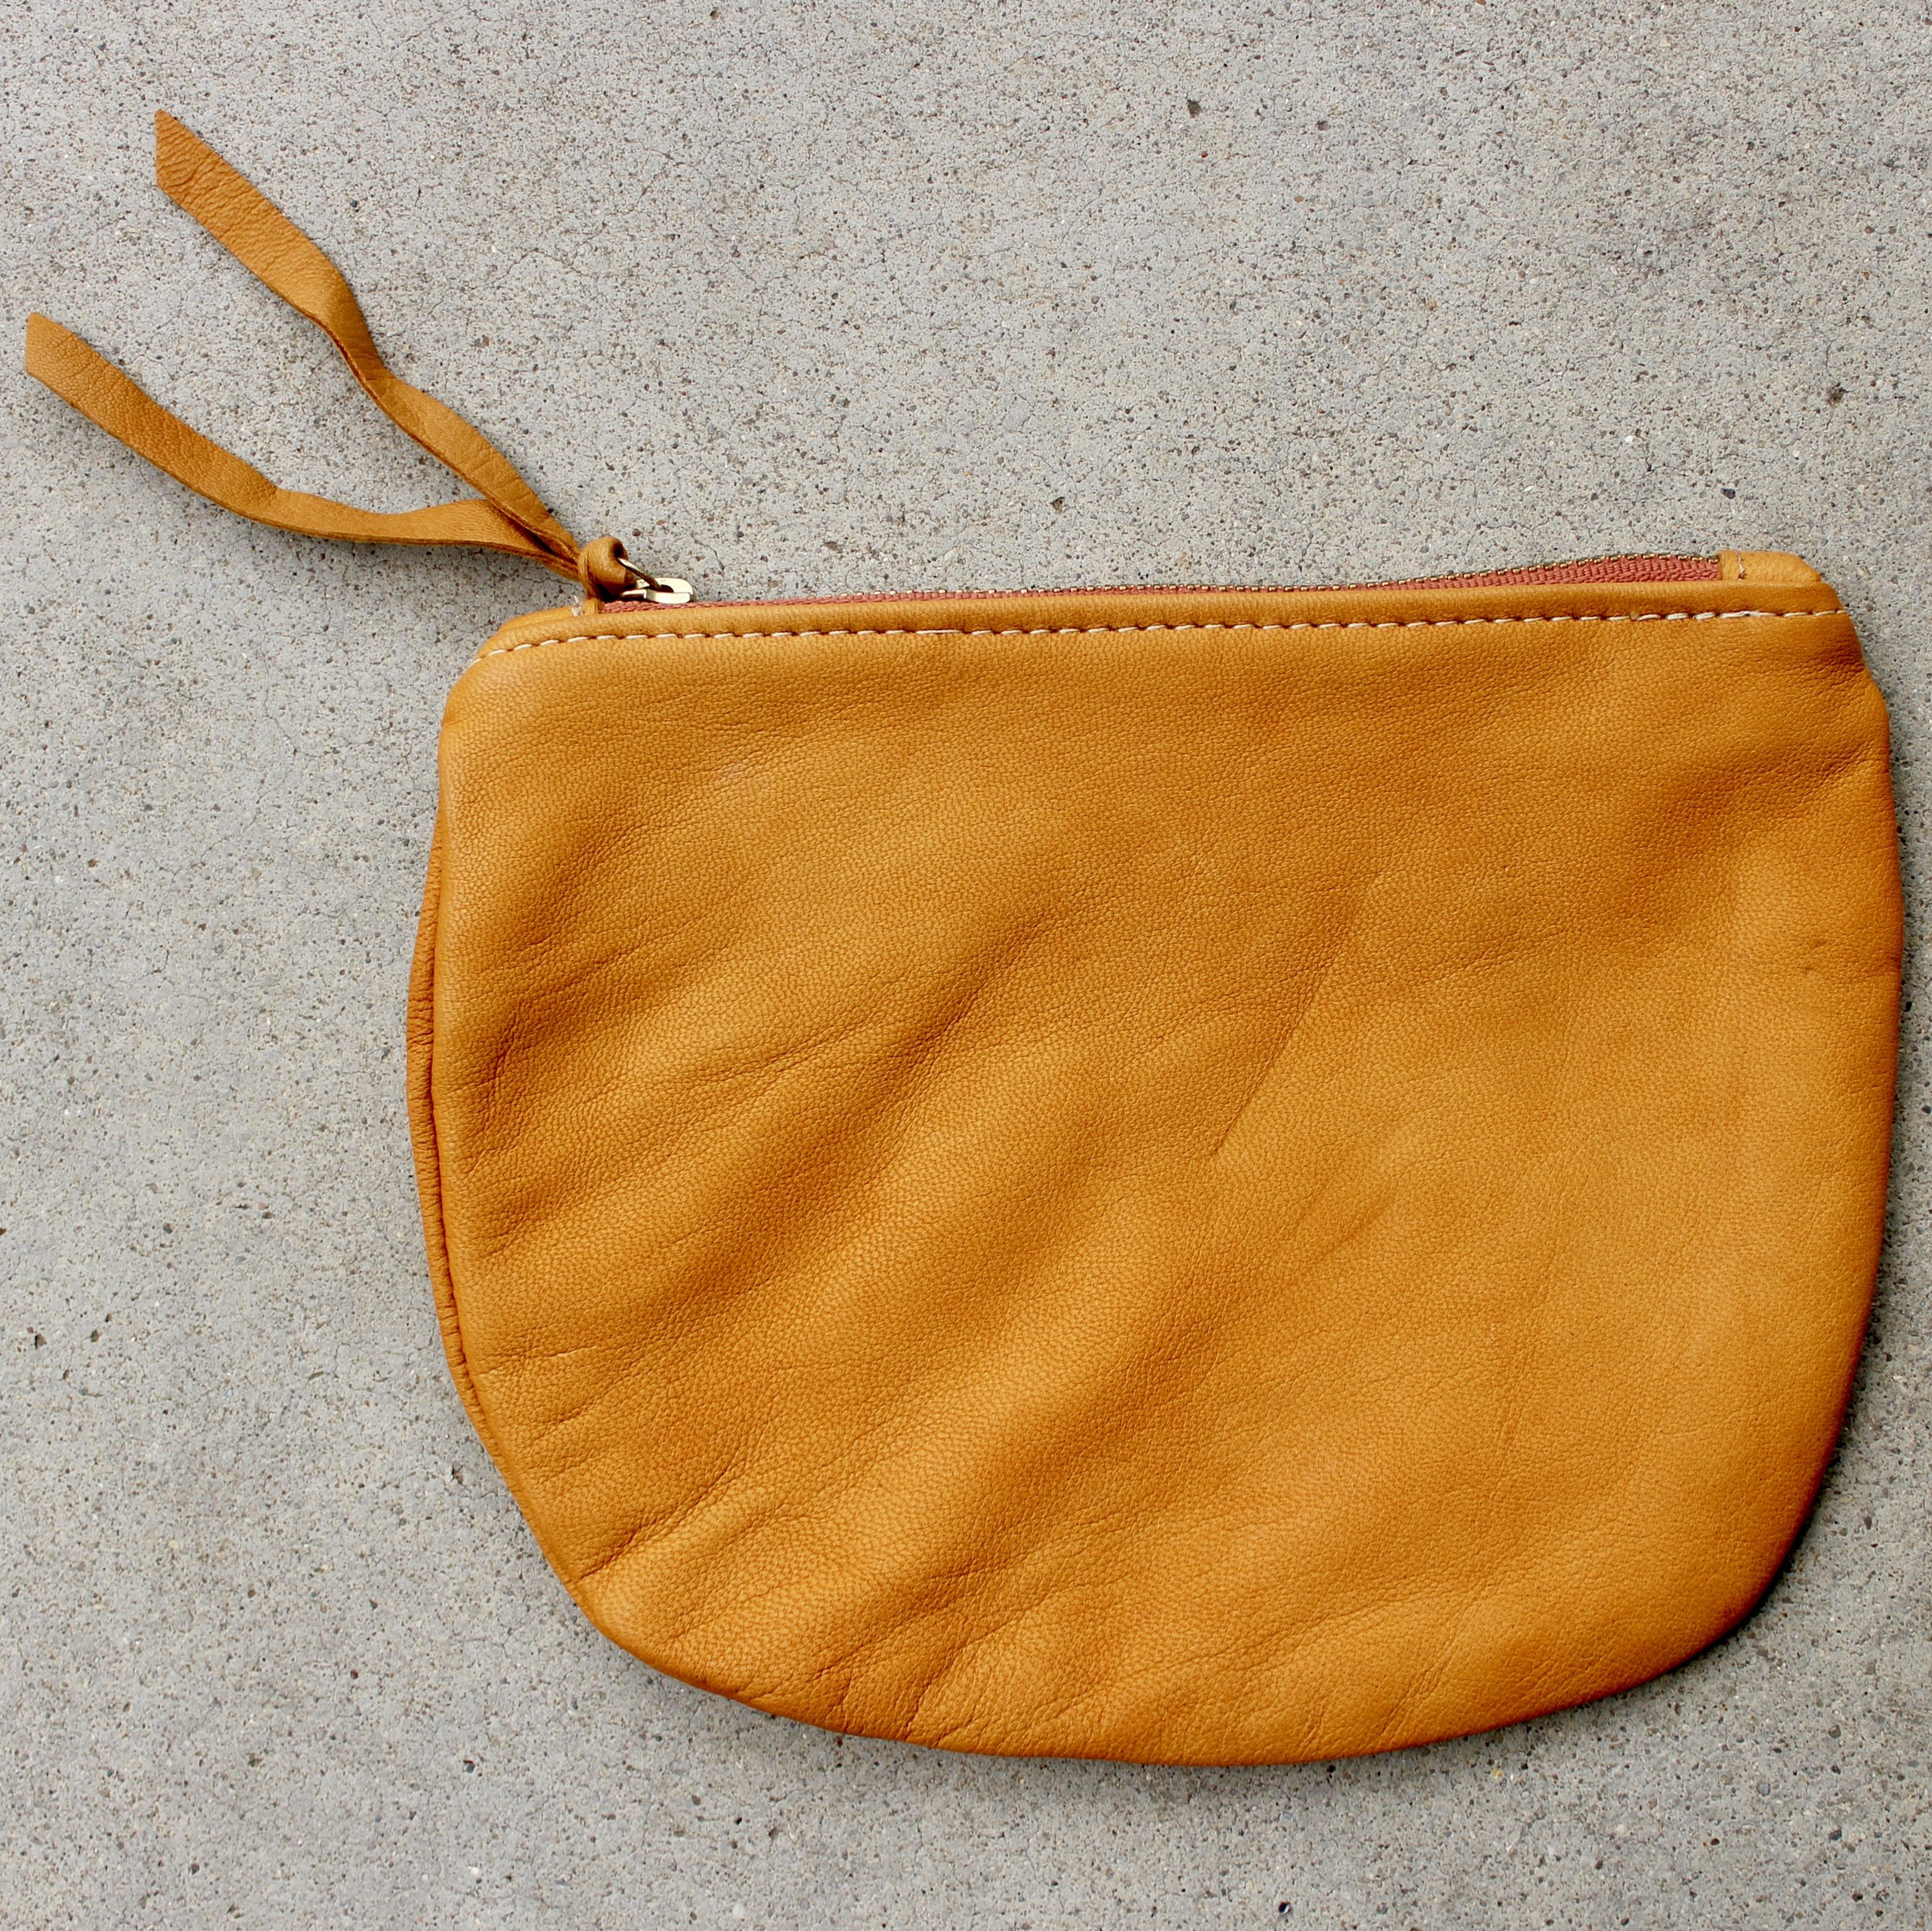 The Tan Leather Pouch